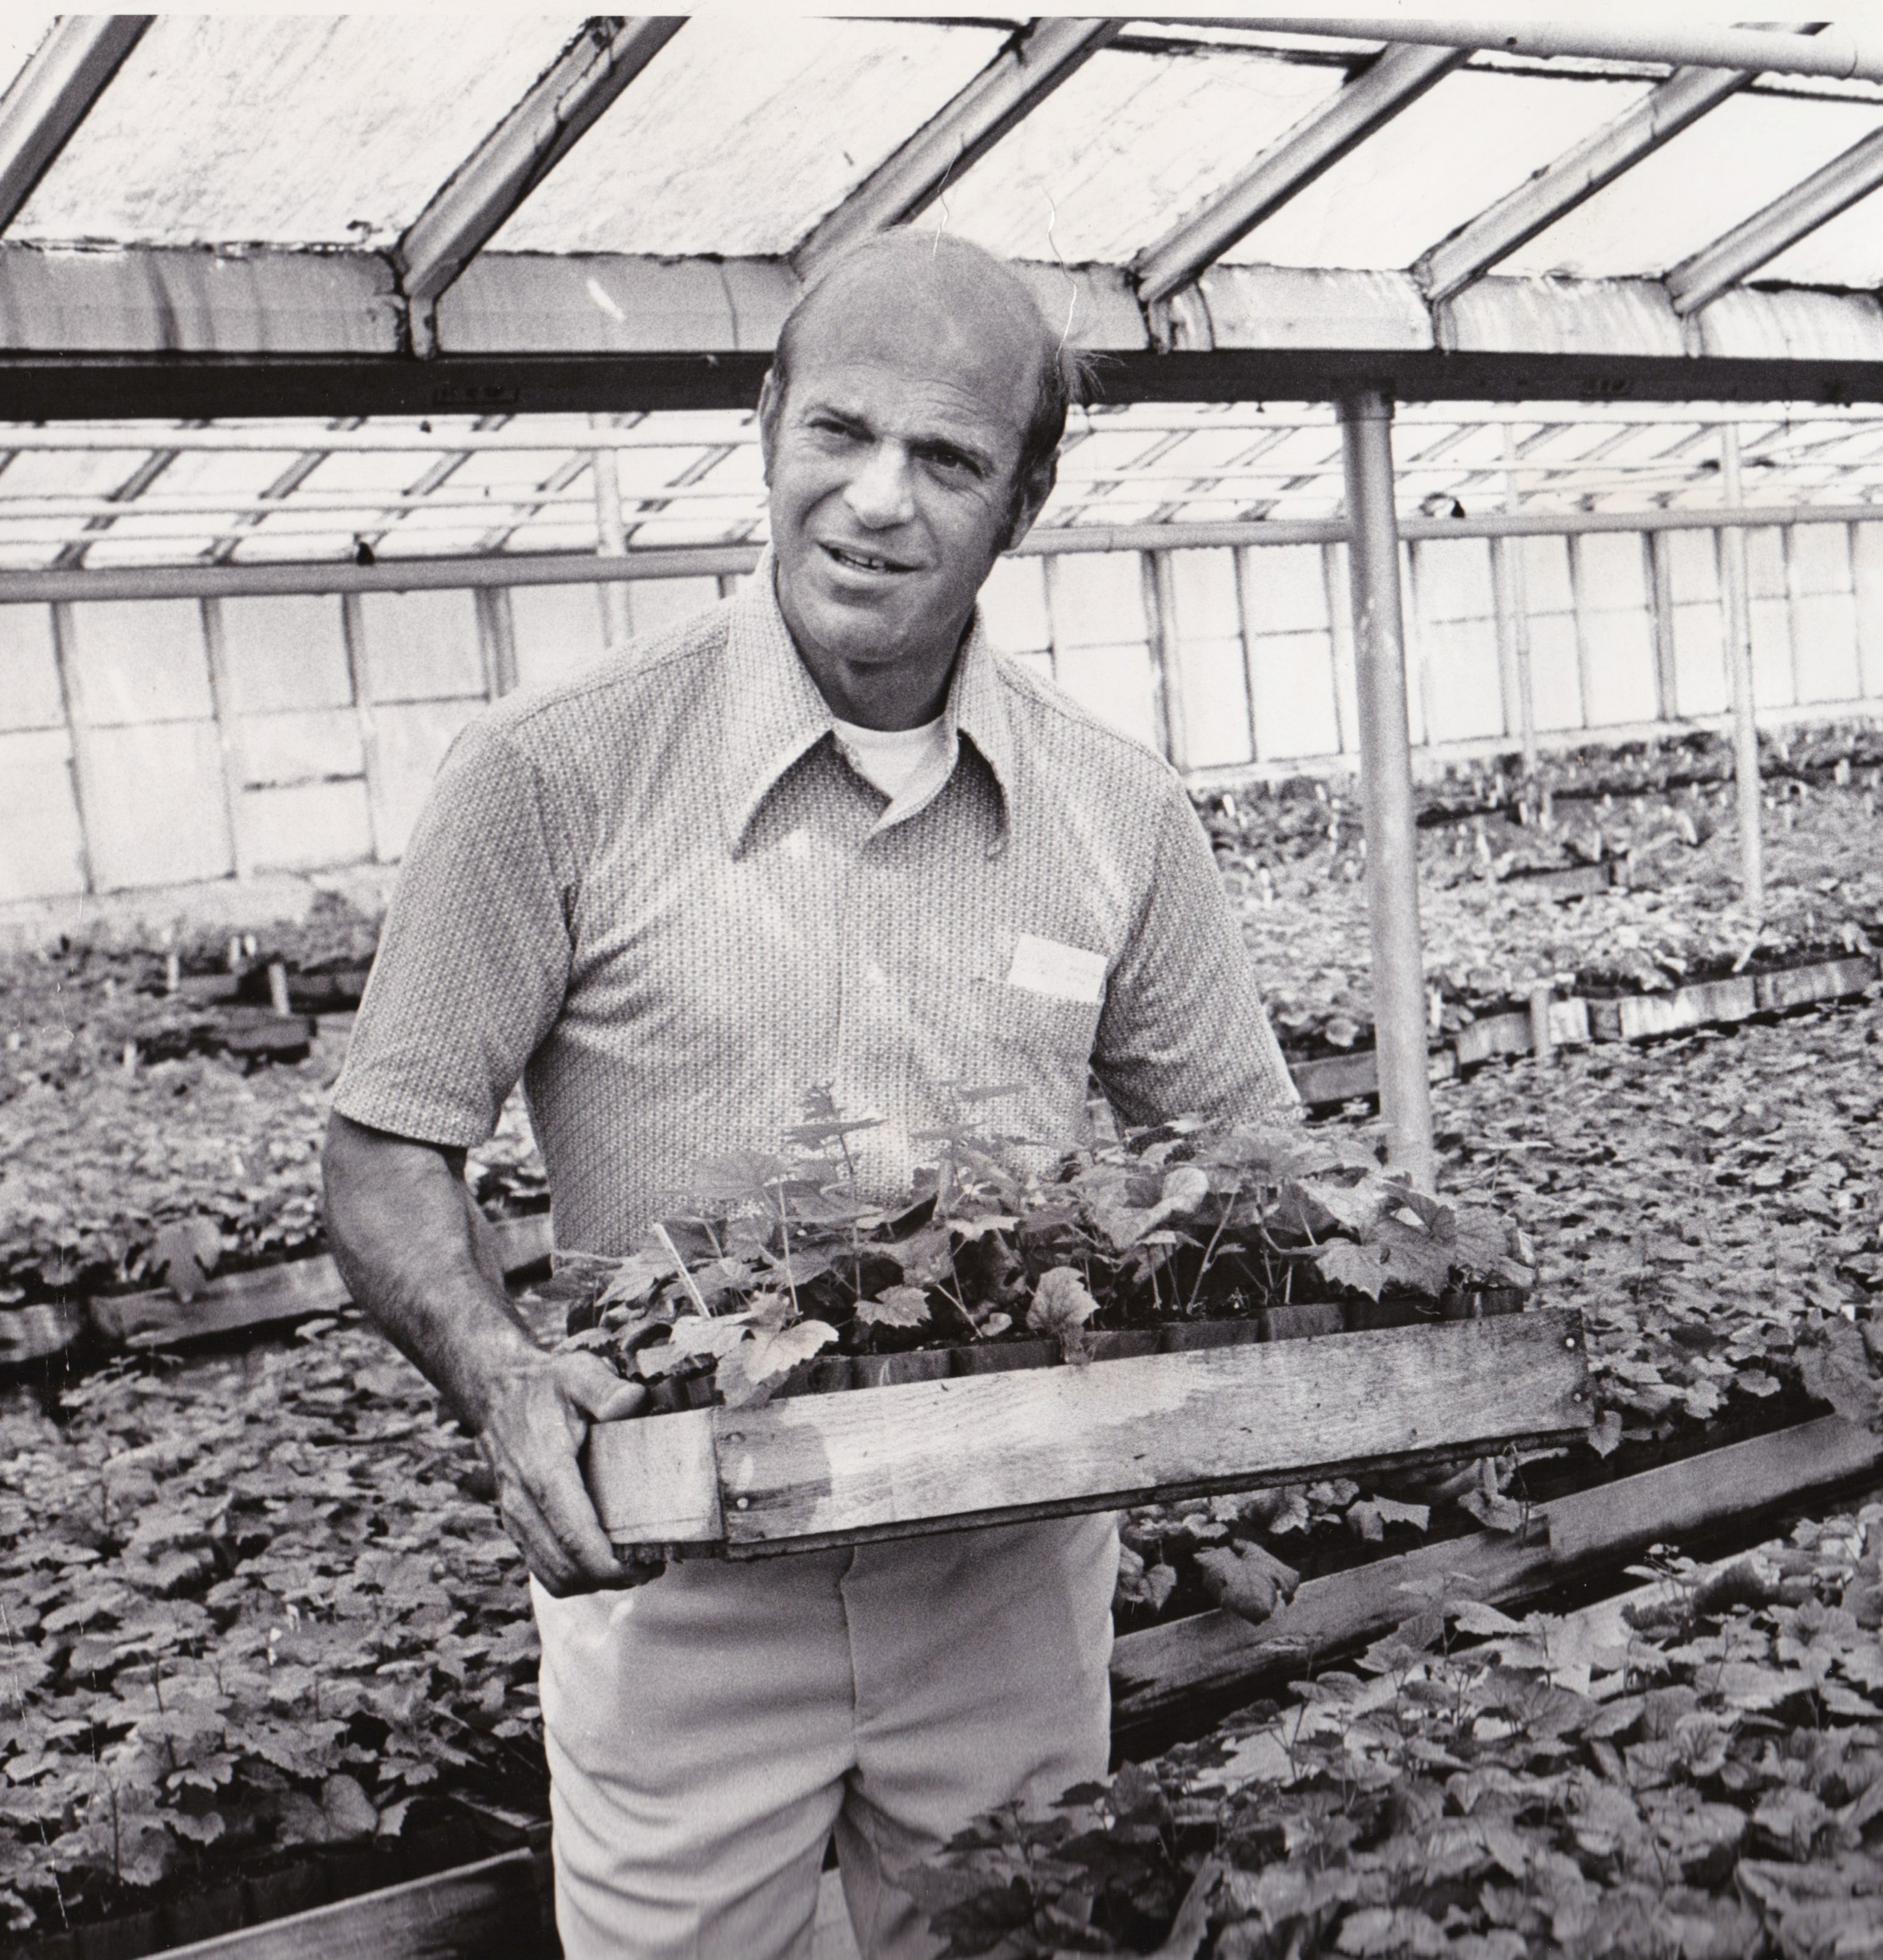 Charles Coury with his nursery vines in Portland, August 13, 1972. He had over 200,000 plants in 1972 and had 1,000,000 by 1973.